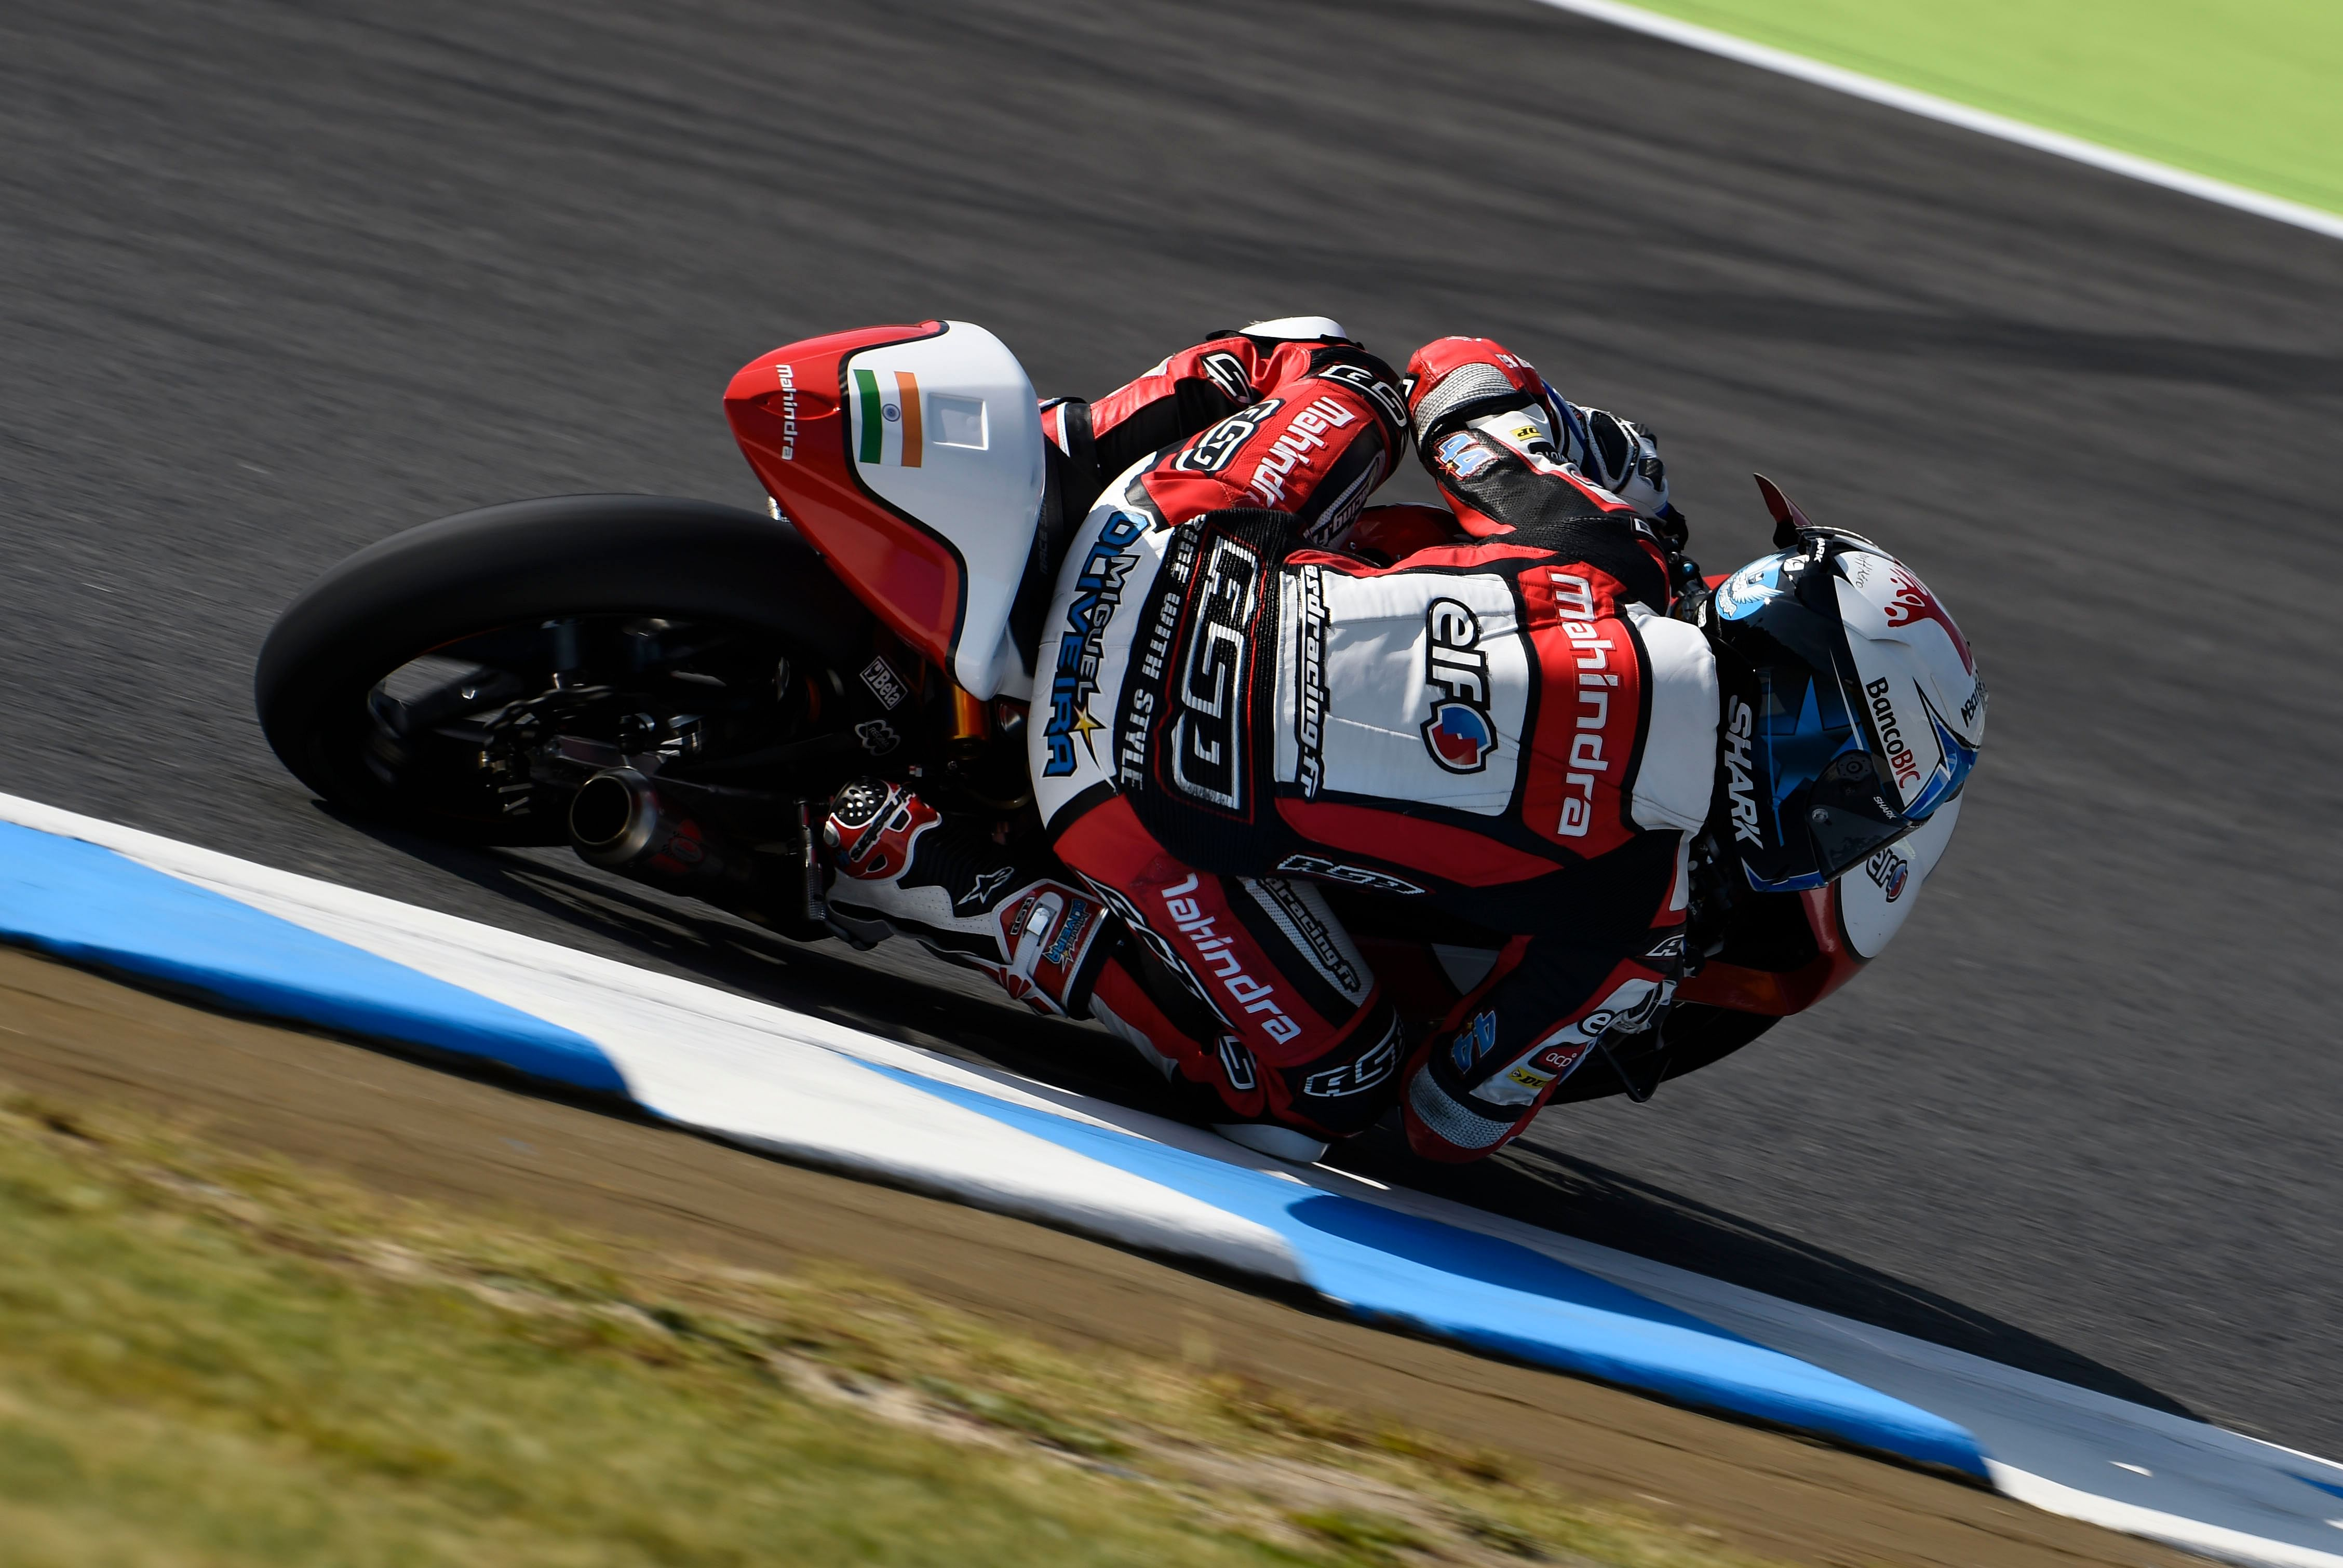 Mahindra on podium, but disappointment for official team riders